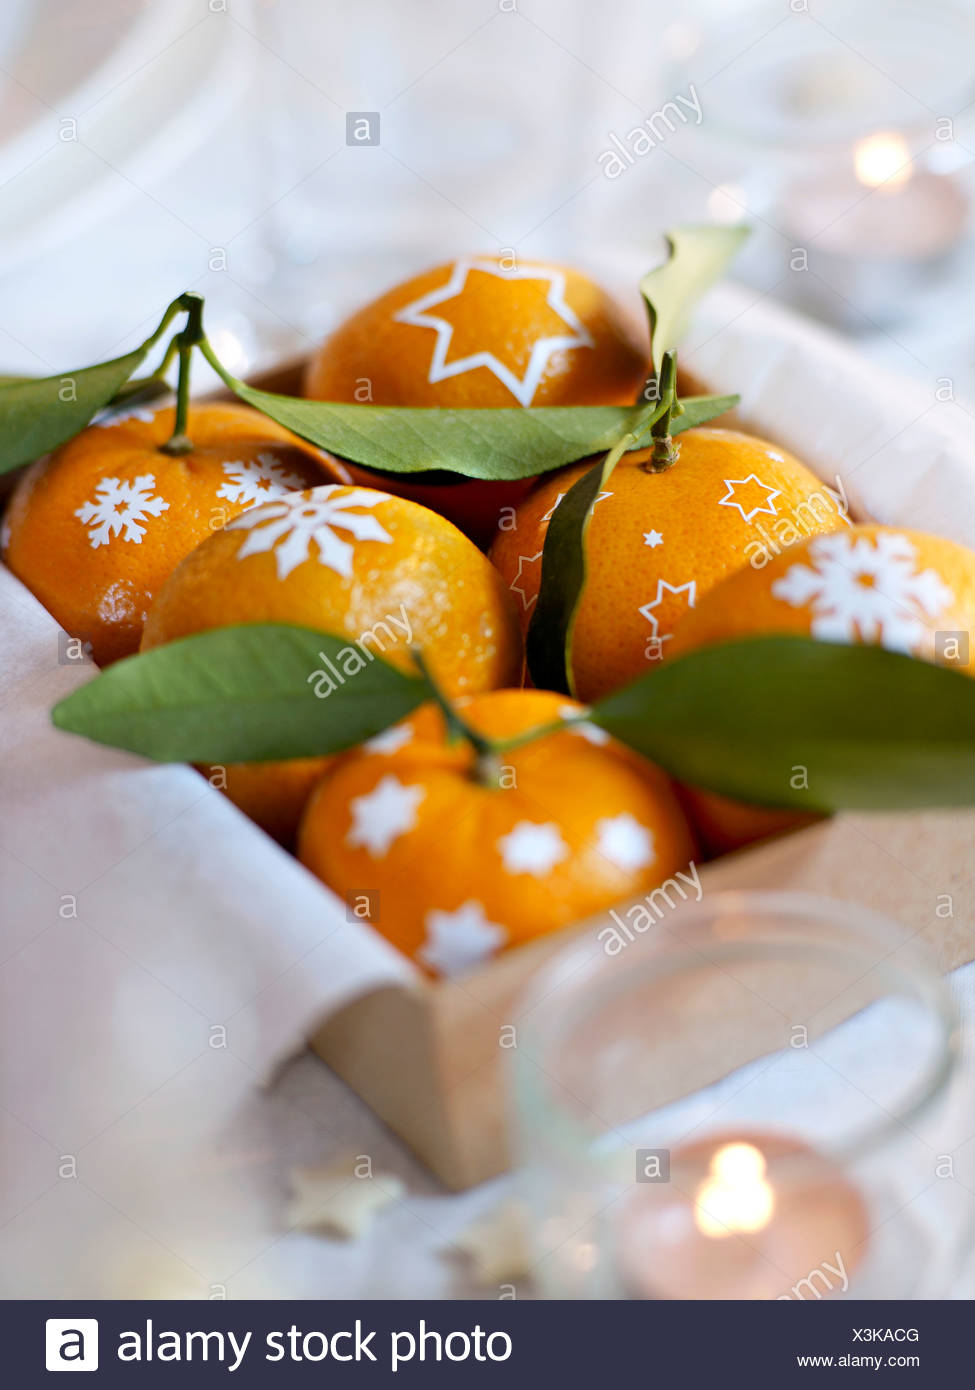 Box of decorated clementines - Stock Image